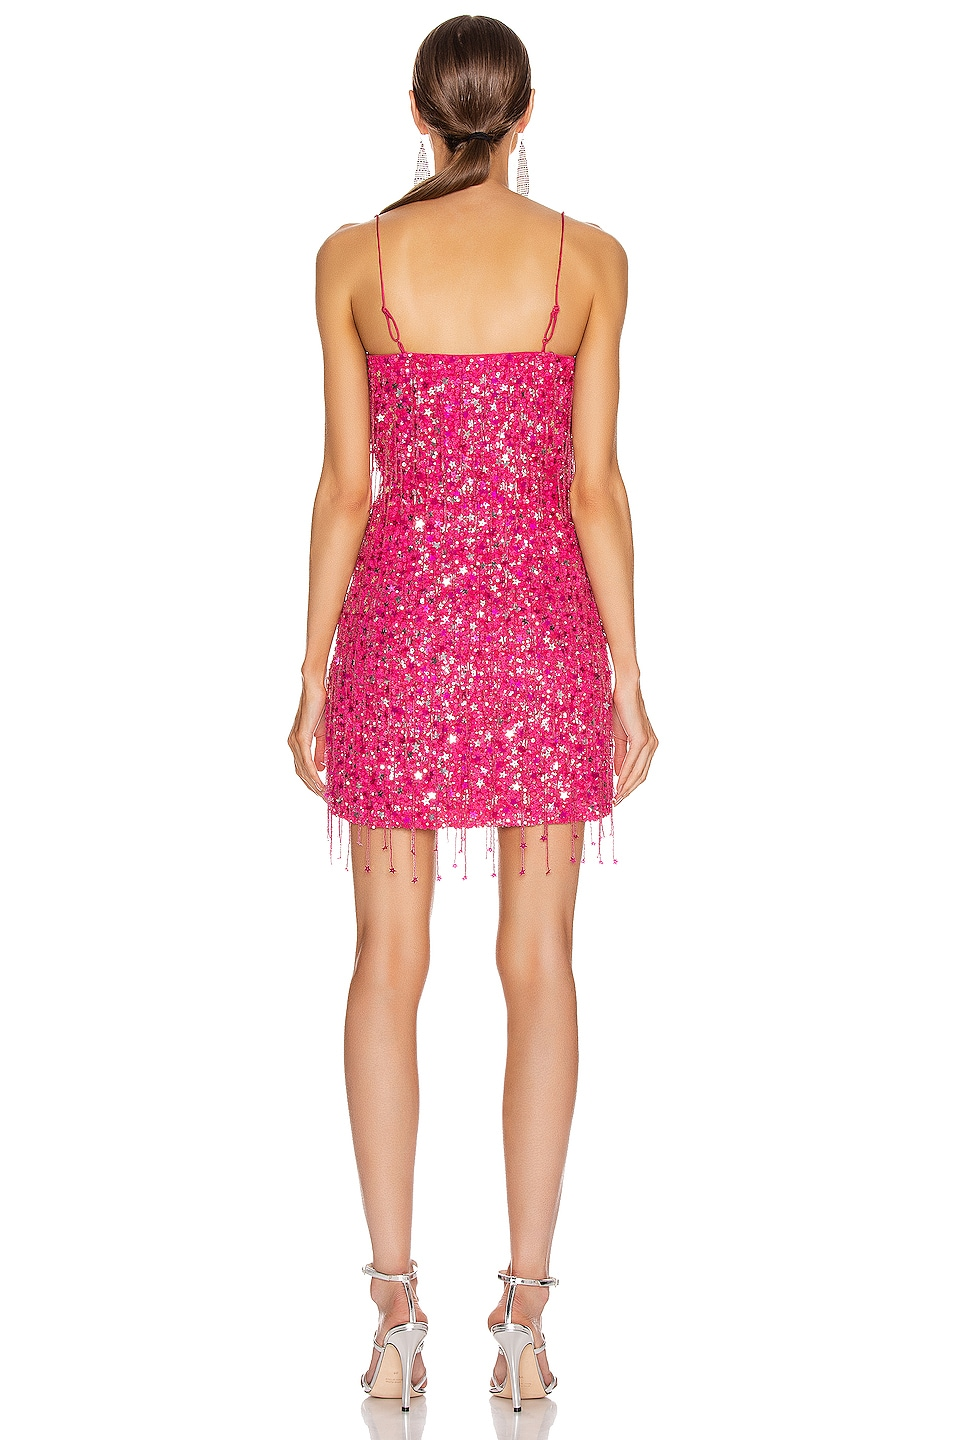 Image 3 of retrofete for FWRD Heather Dress in Fuchsia with Tassels